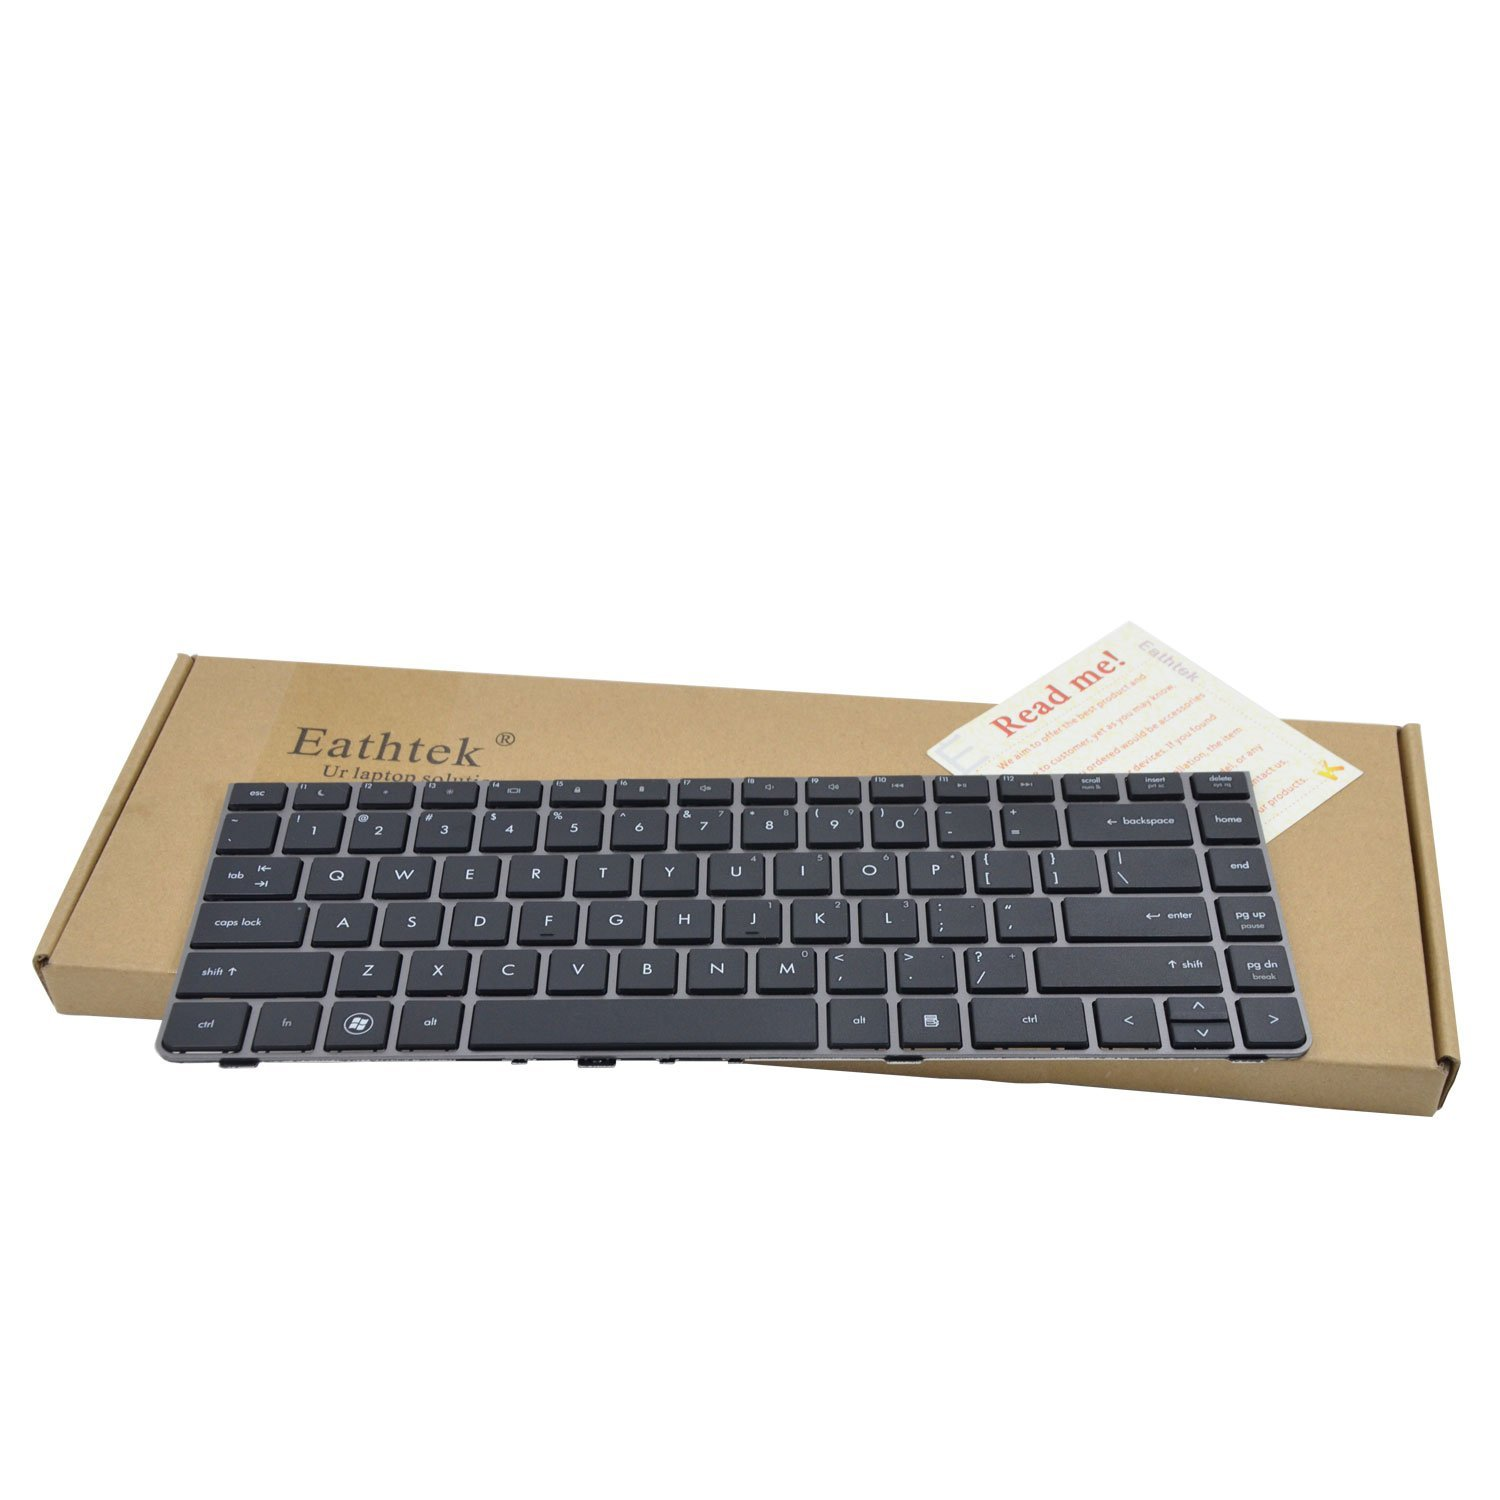 Eathtek Replacement Keyboard with Frame for HP ProBook 4330 4330S 4331S 4430s 4431s 4435s 4436s series Black US Layout, Compatible with part number 646365-001